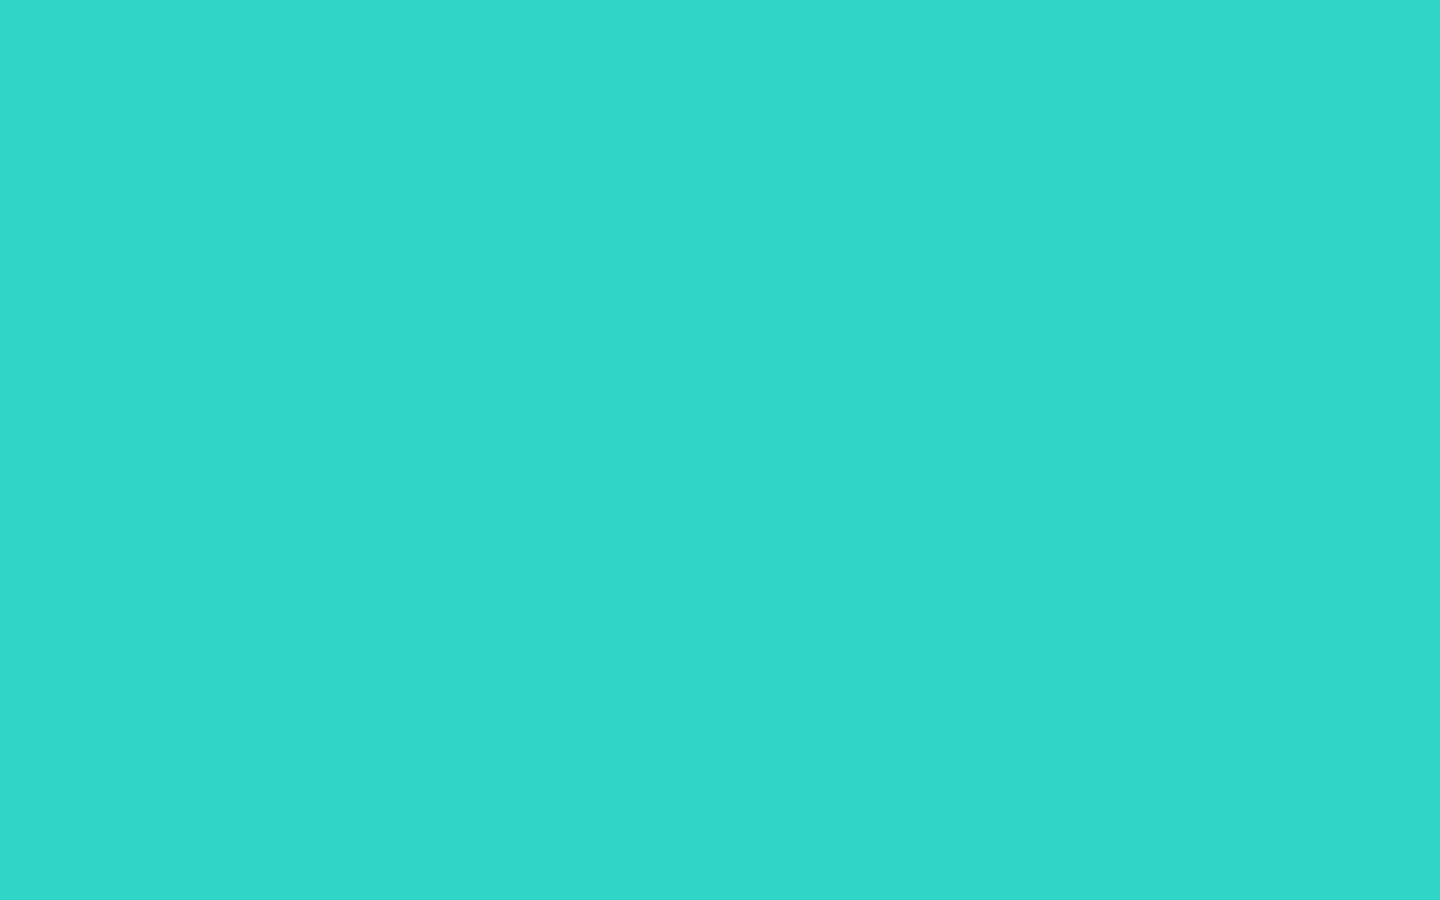 1440x900 Turquoise Solid Color Background